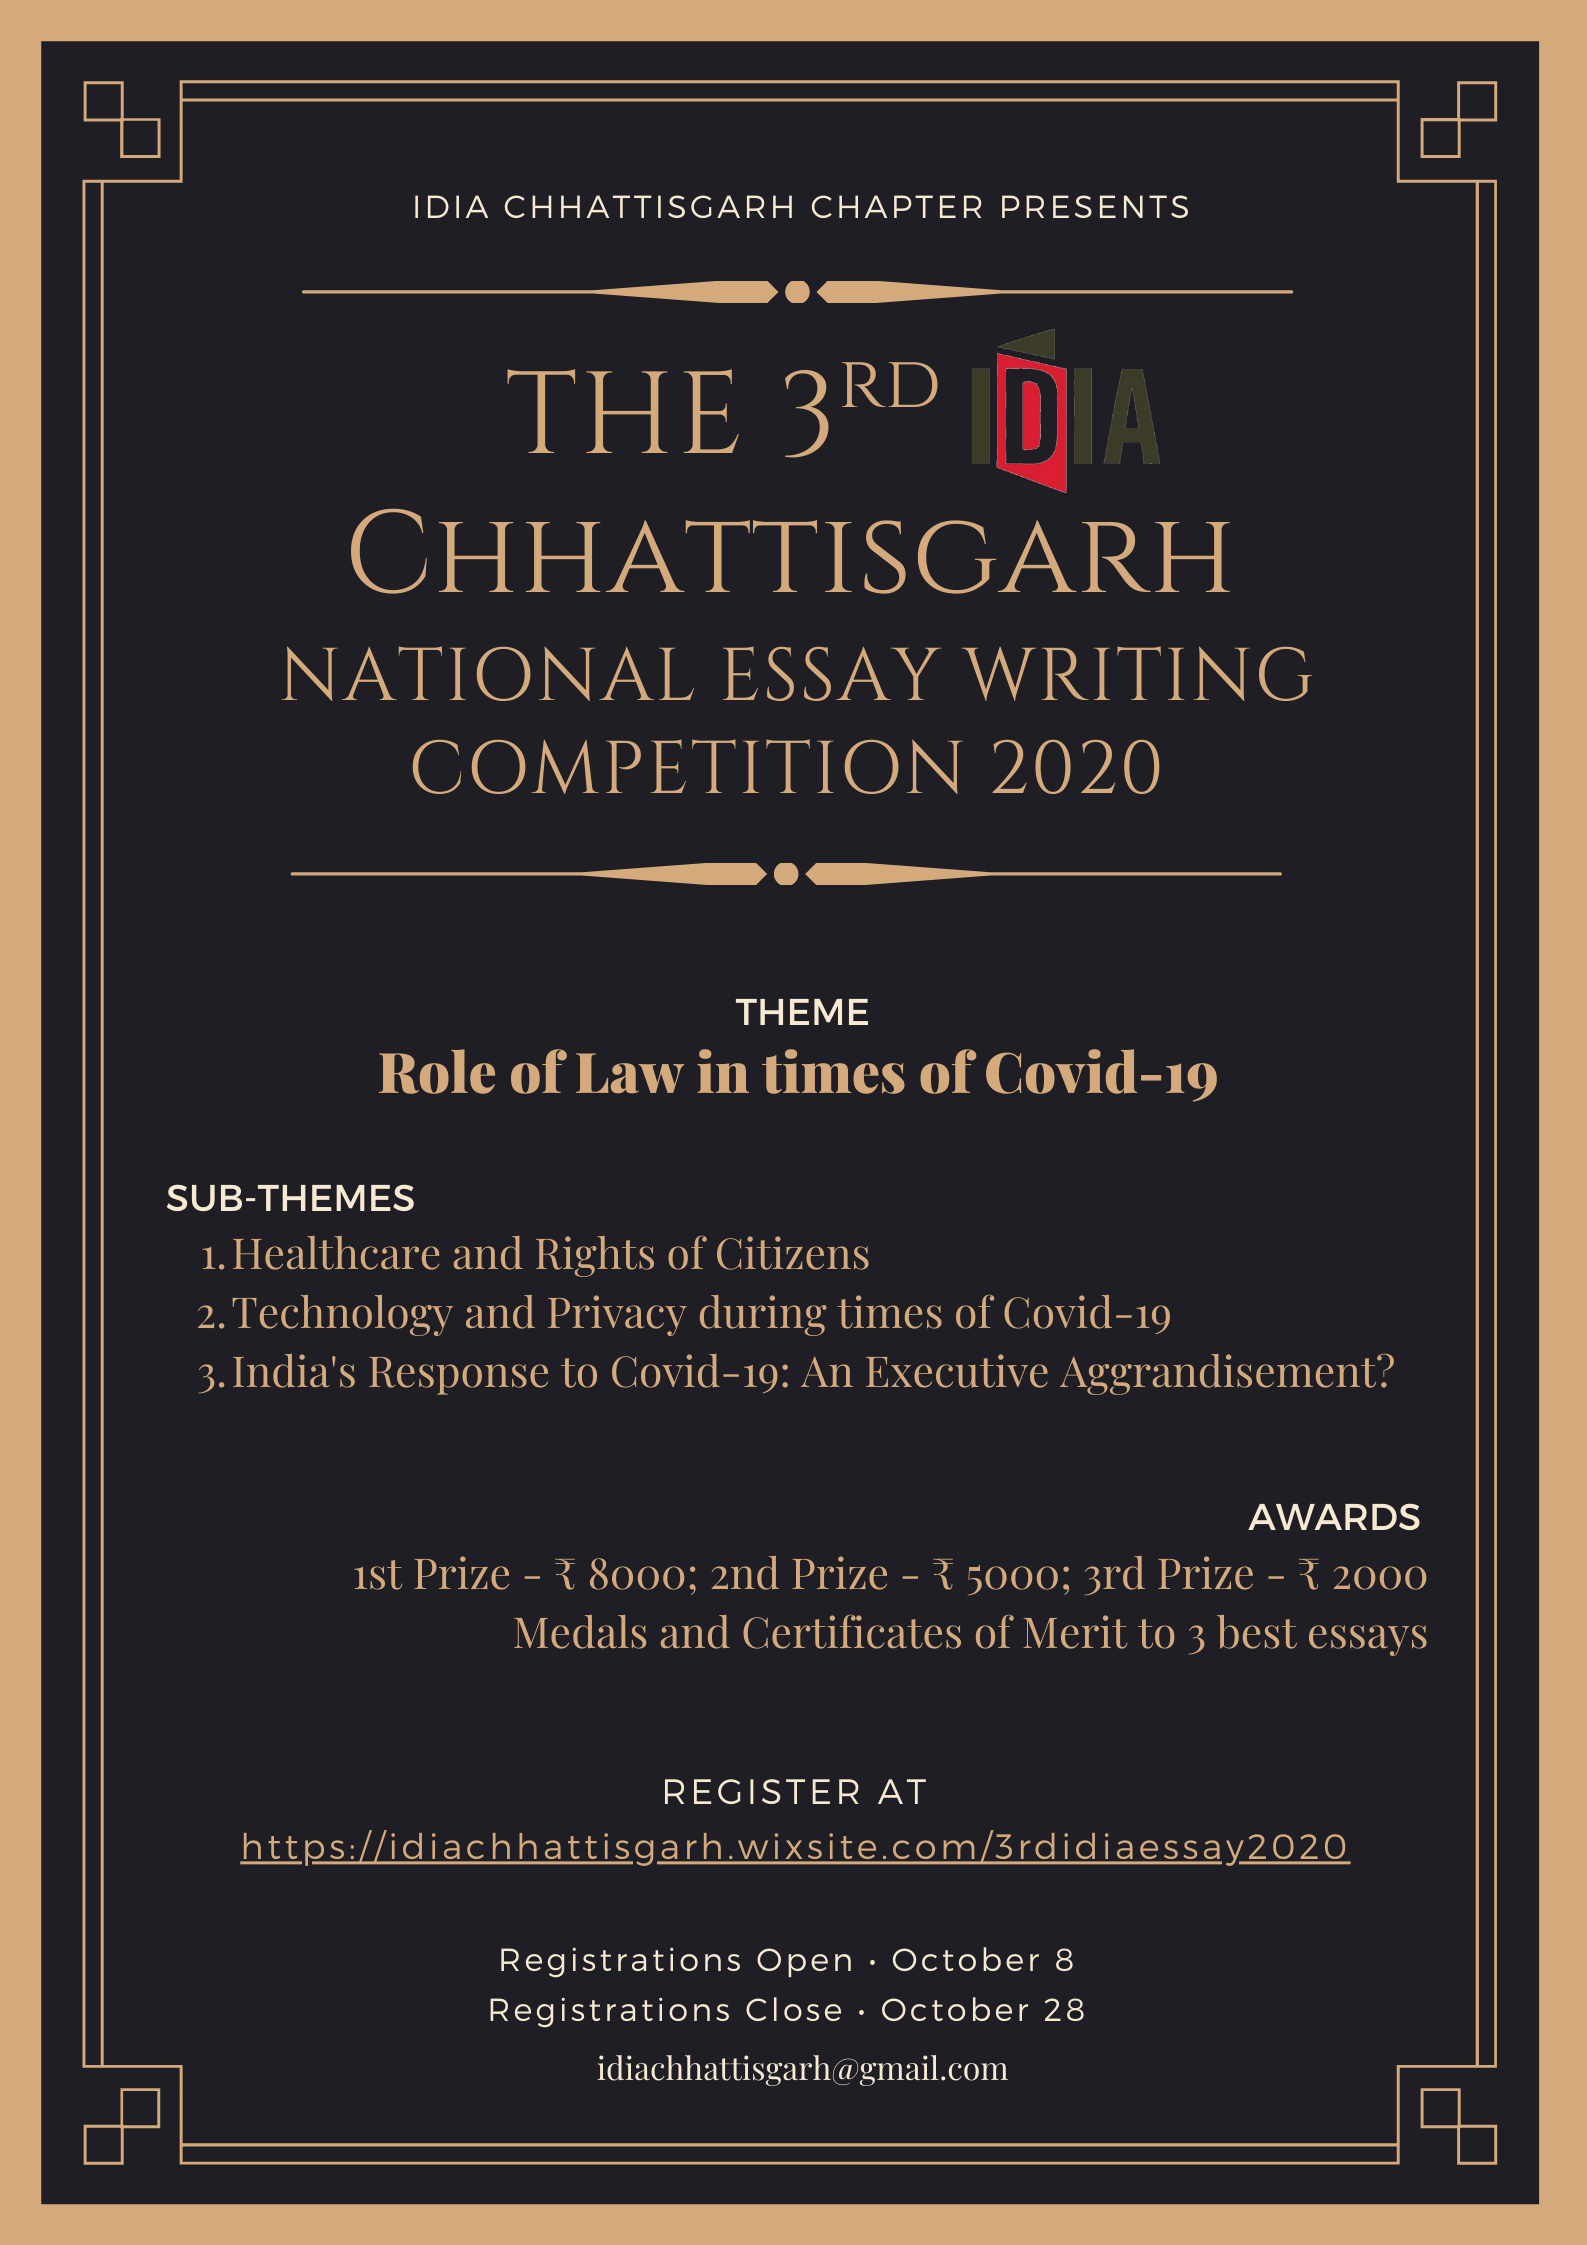 The 3rd IDIA Chhattisgarh National Essay Writing Competition 2020